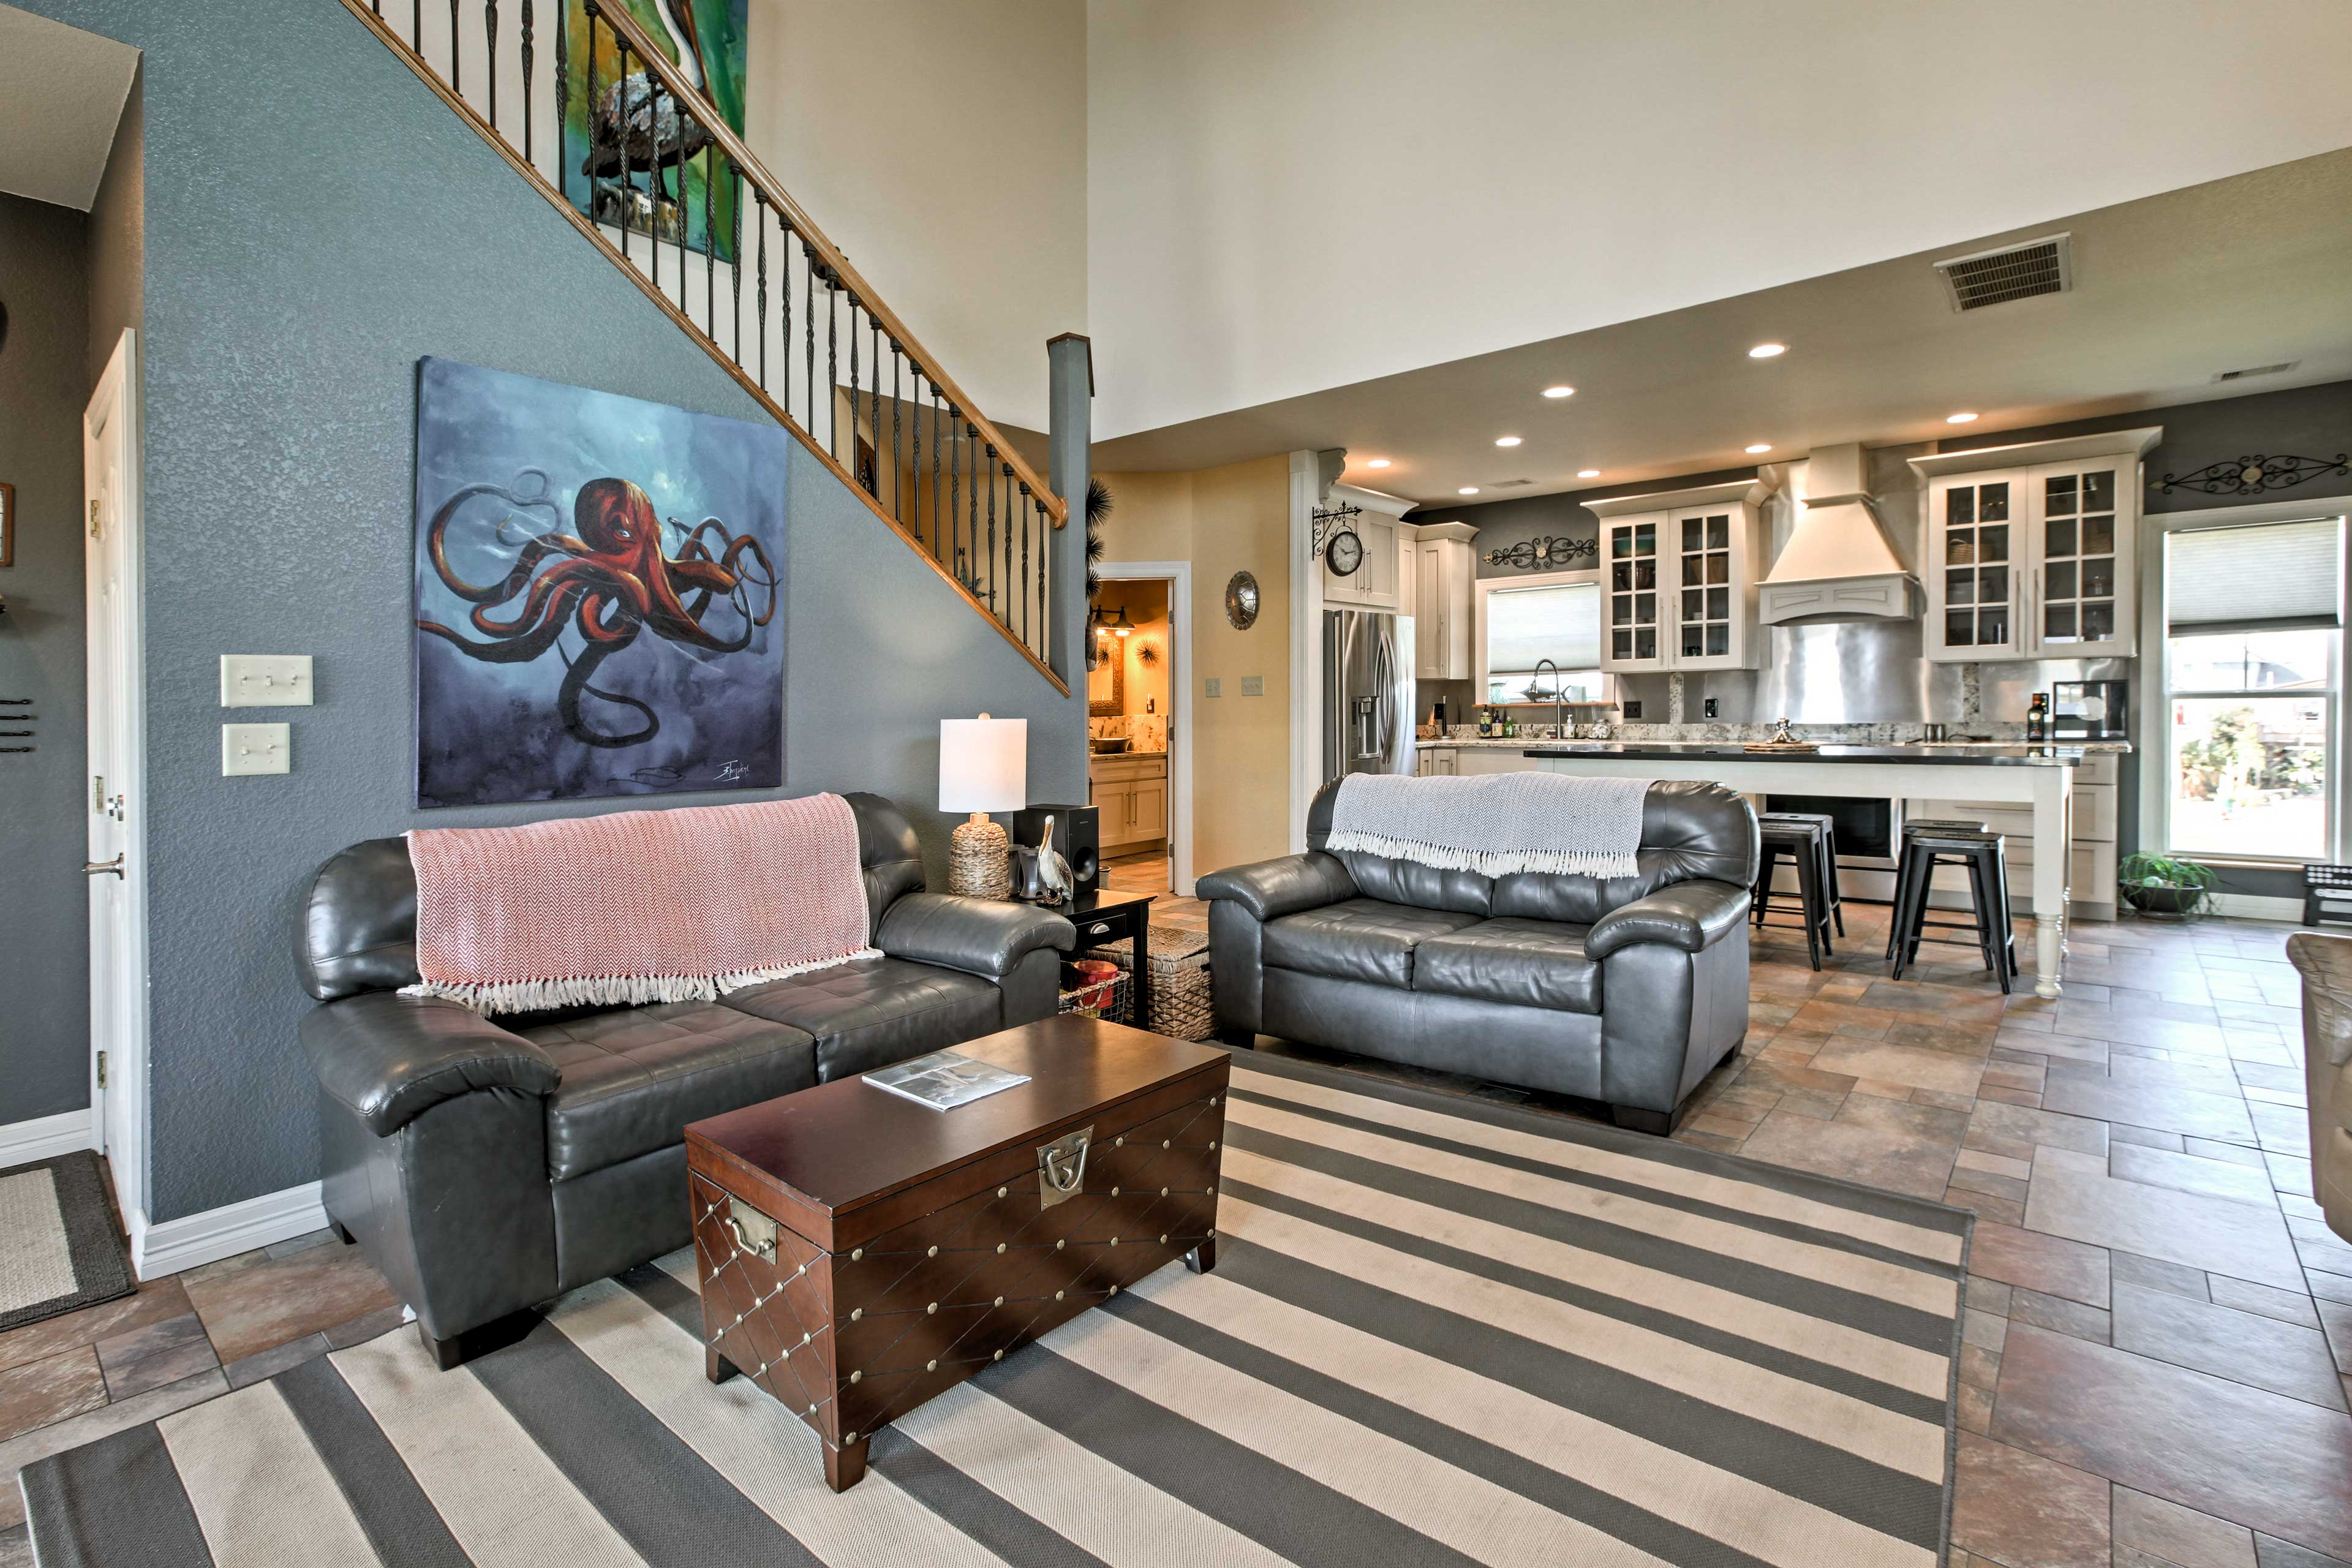 The open floor plan delivers a cohesive space with soothing earth tones.